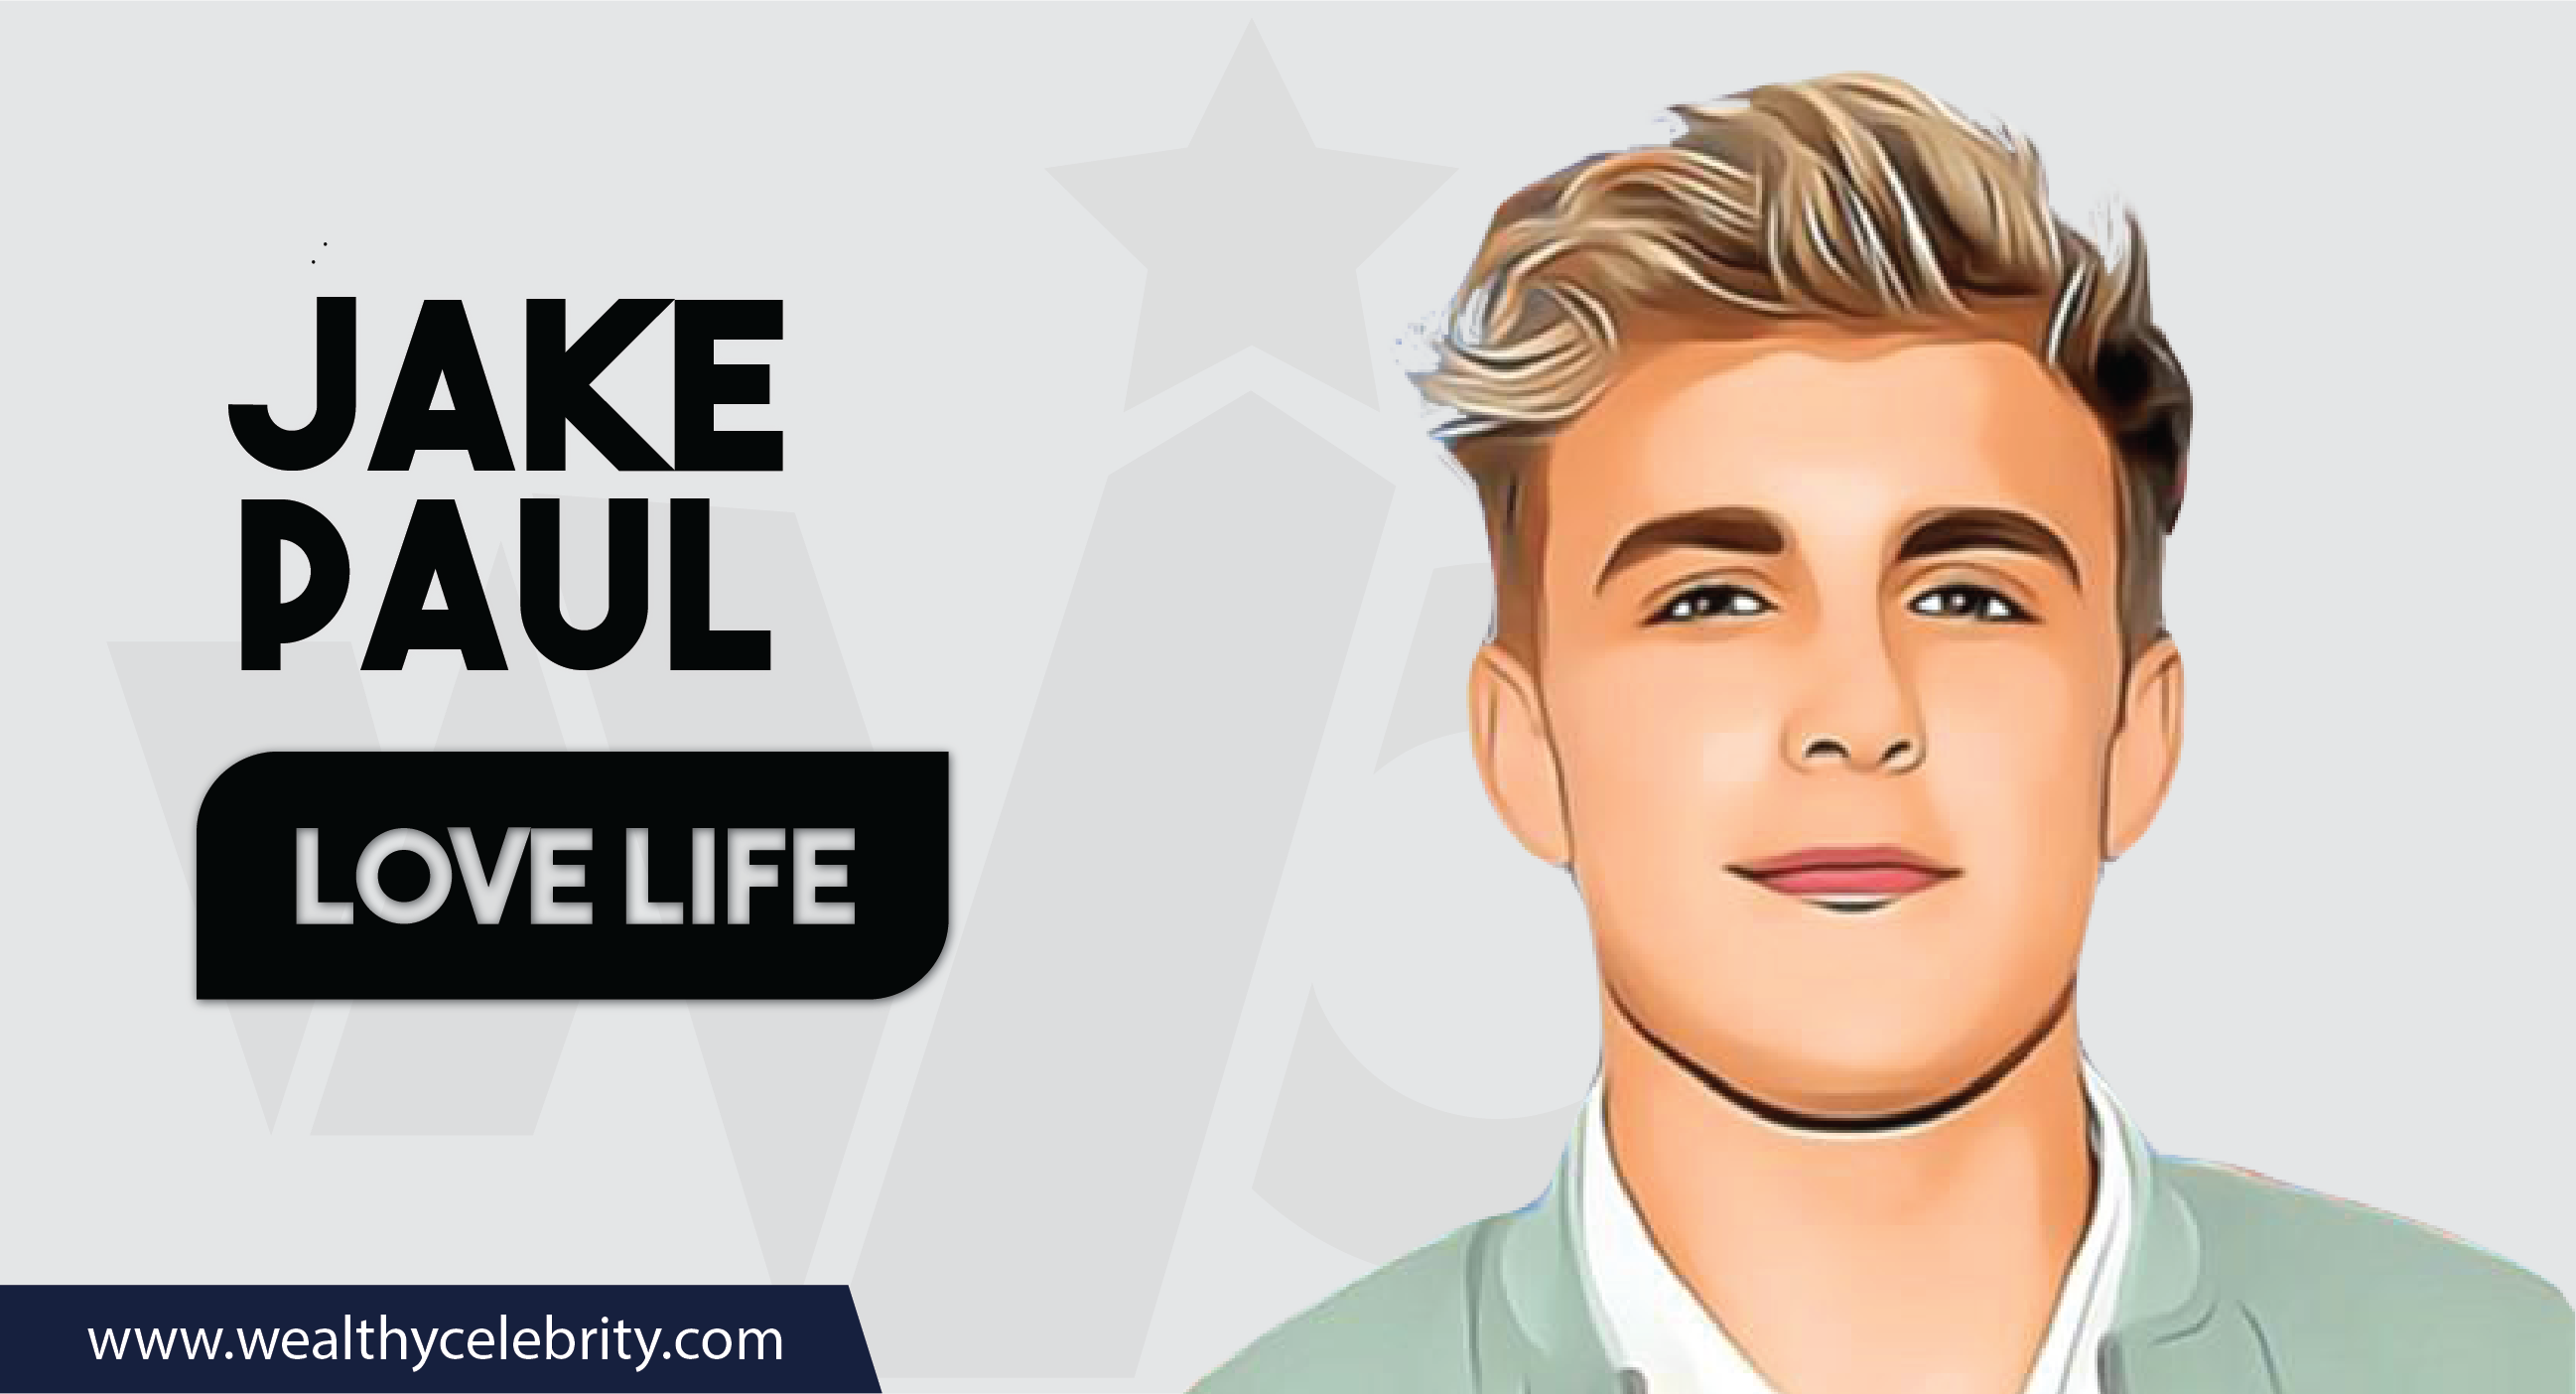 Jake Paul_Love Life